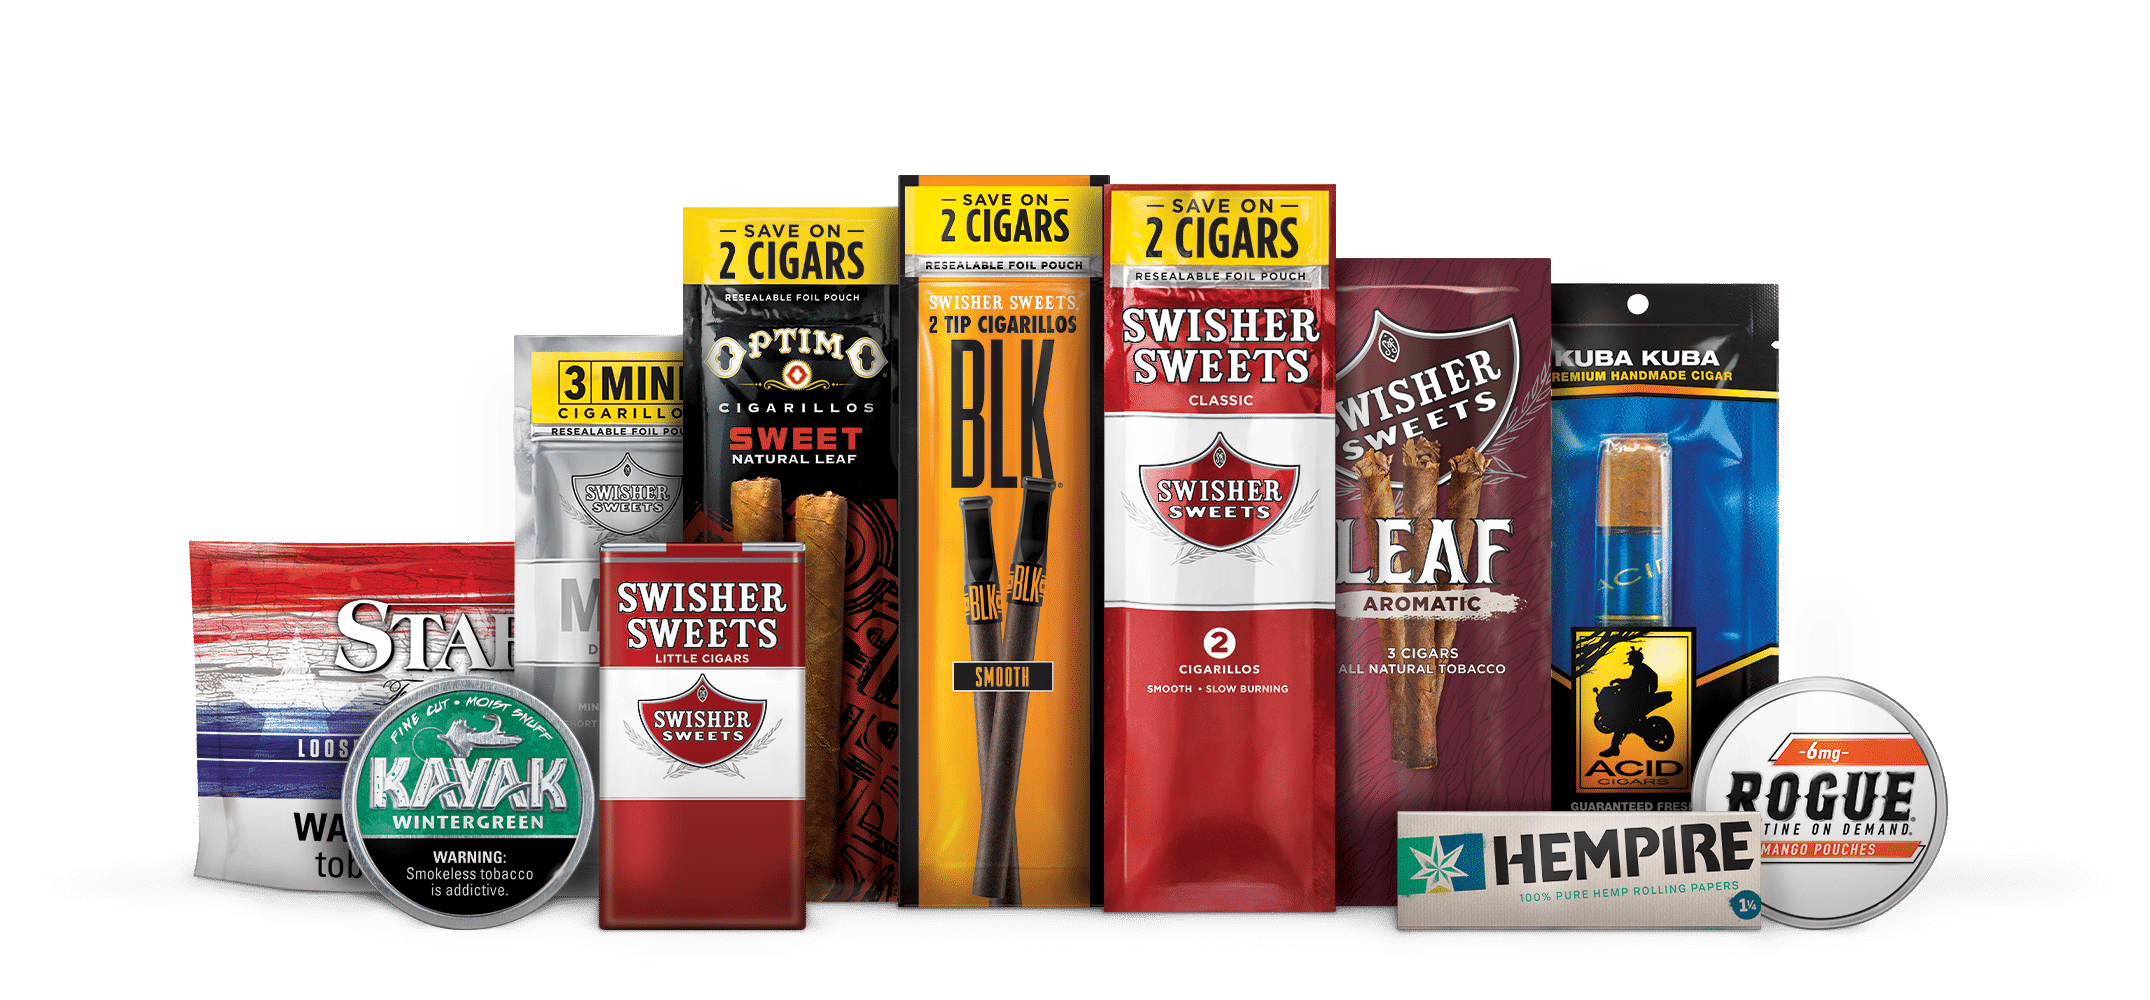 Swisher lineup of products